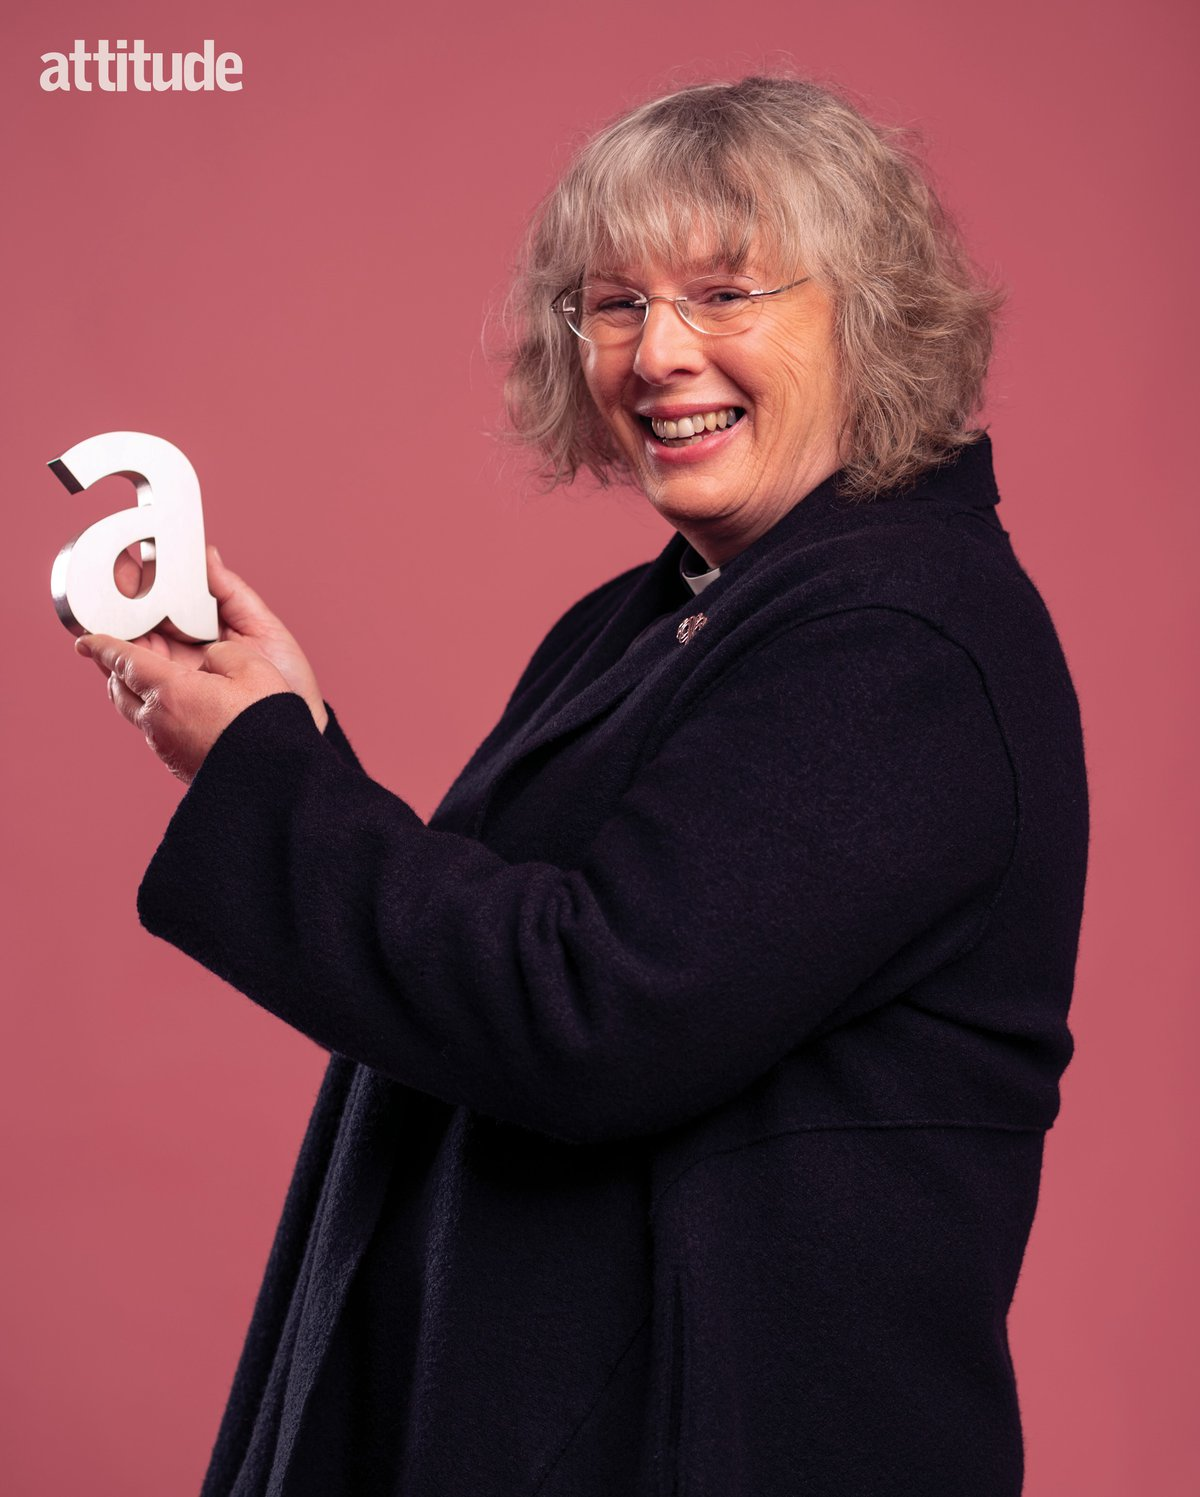 Photo of Revd Sarah holding up the letter A